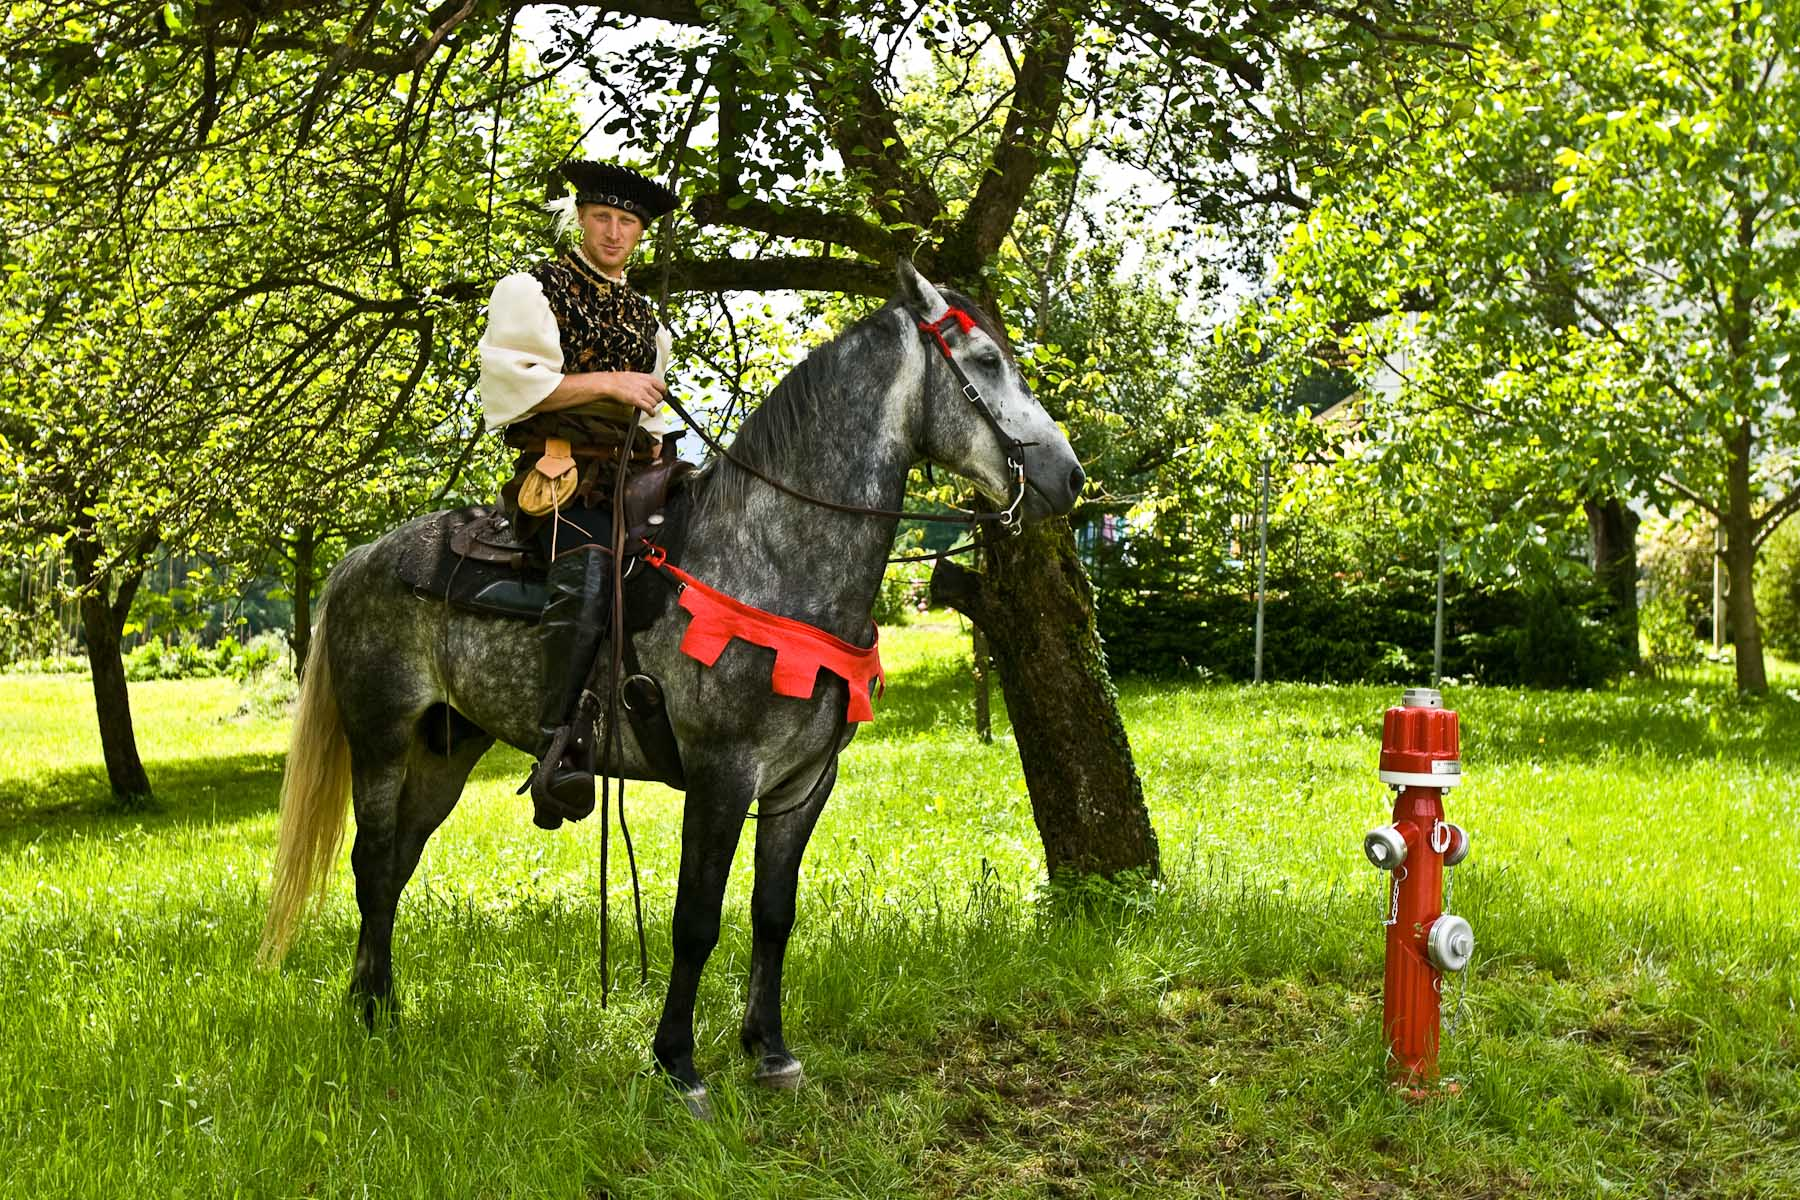 A knight and his horse wait by a fire hydrant in Bled, Slovenia, on June 8, 2008. Signs of modern era are everywhere and are inavoidable. To cover it all would need too much funding, an expense Slovenian organizers cannot afford. But Austrians do. In Friesach they actually cover hydrants etc. and turn off electricity.